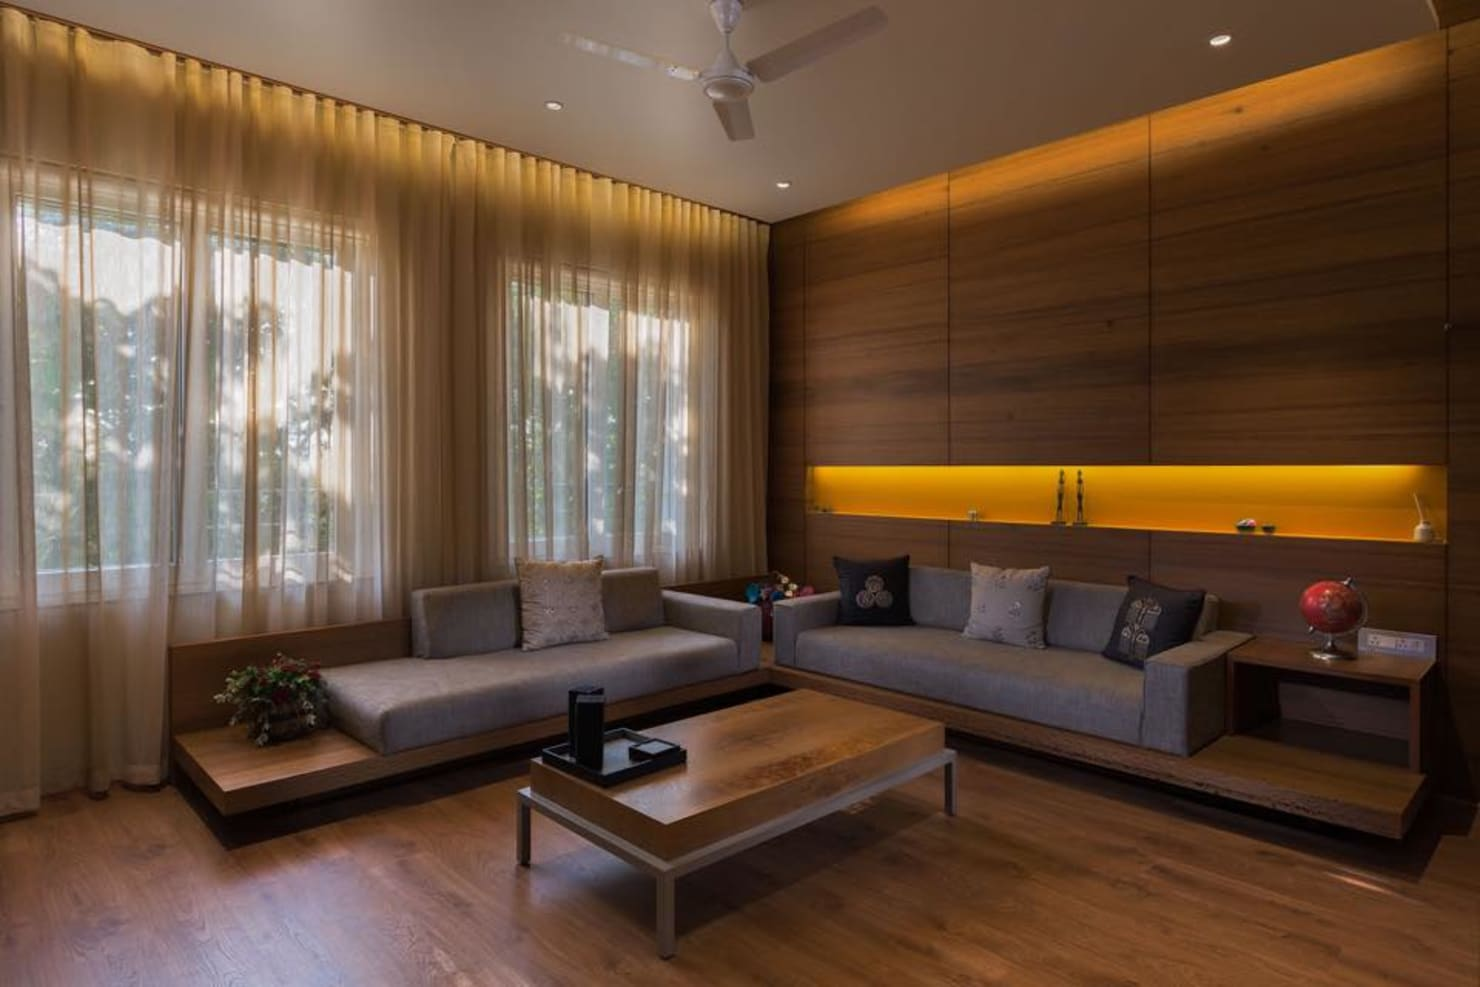 A Grand and Breathtaking family Home in Pune